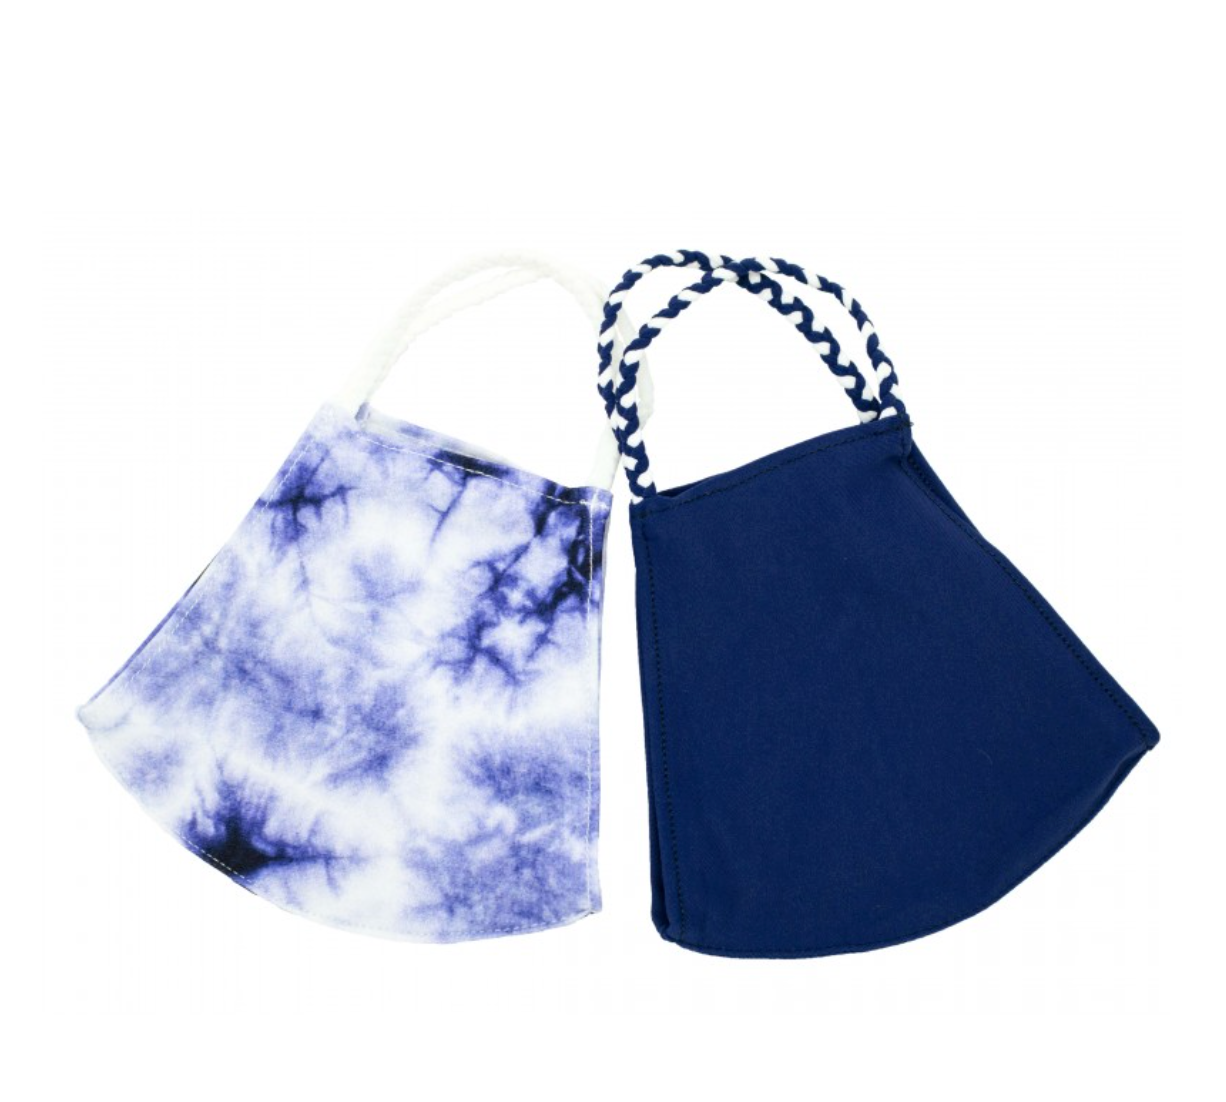 2 pack of Reusable Face masks - Indigo Tie Dye Print & Navy Solid (Ages 6-Adult)